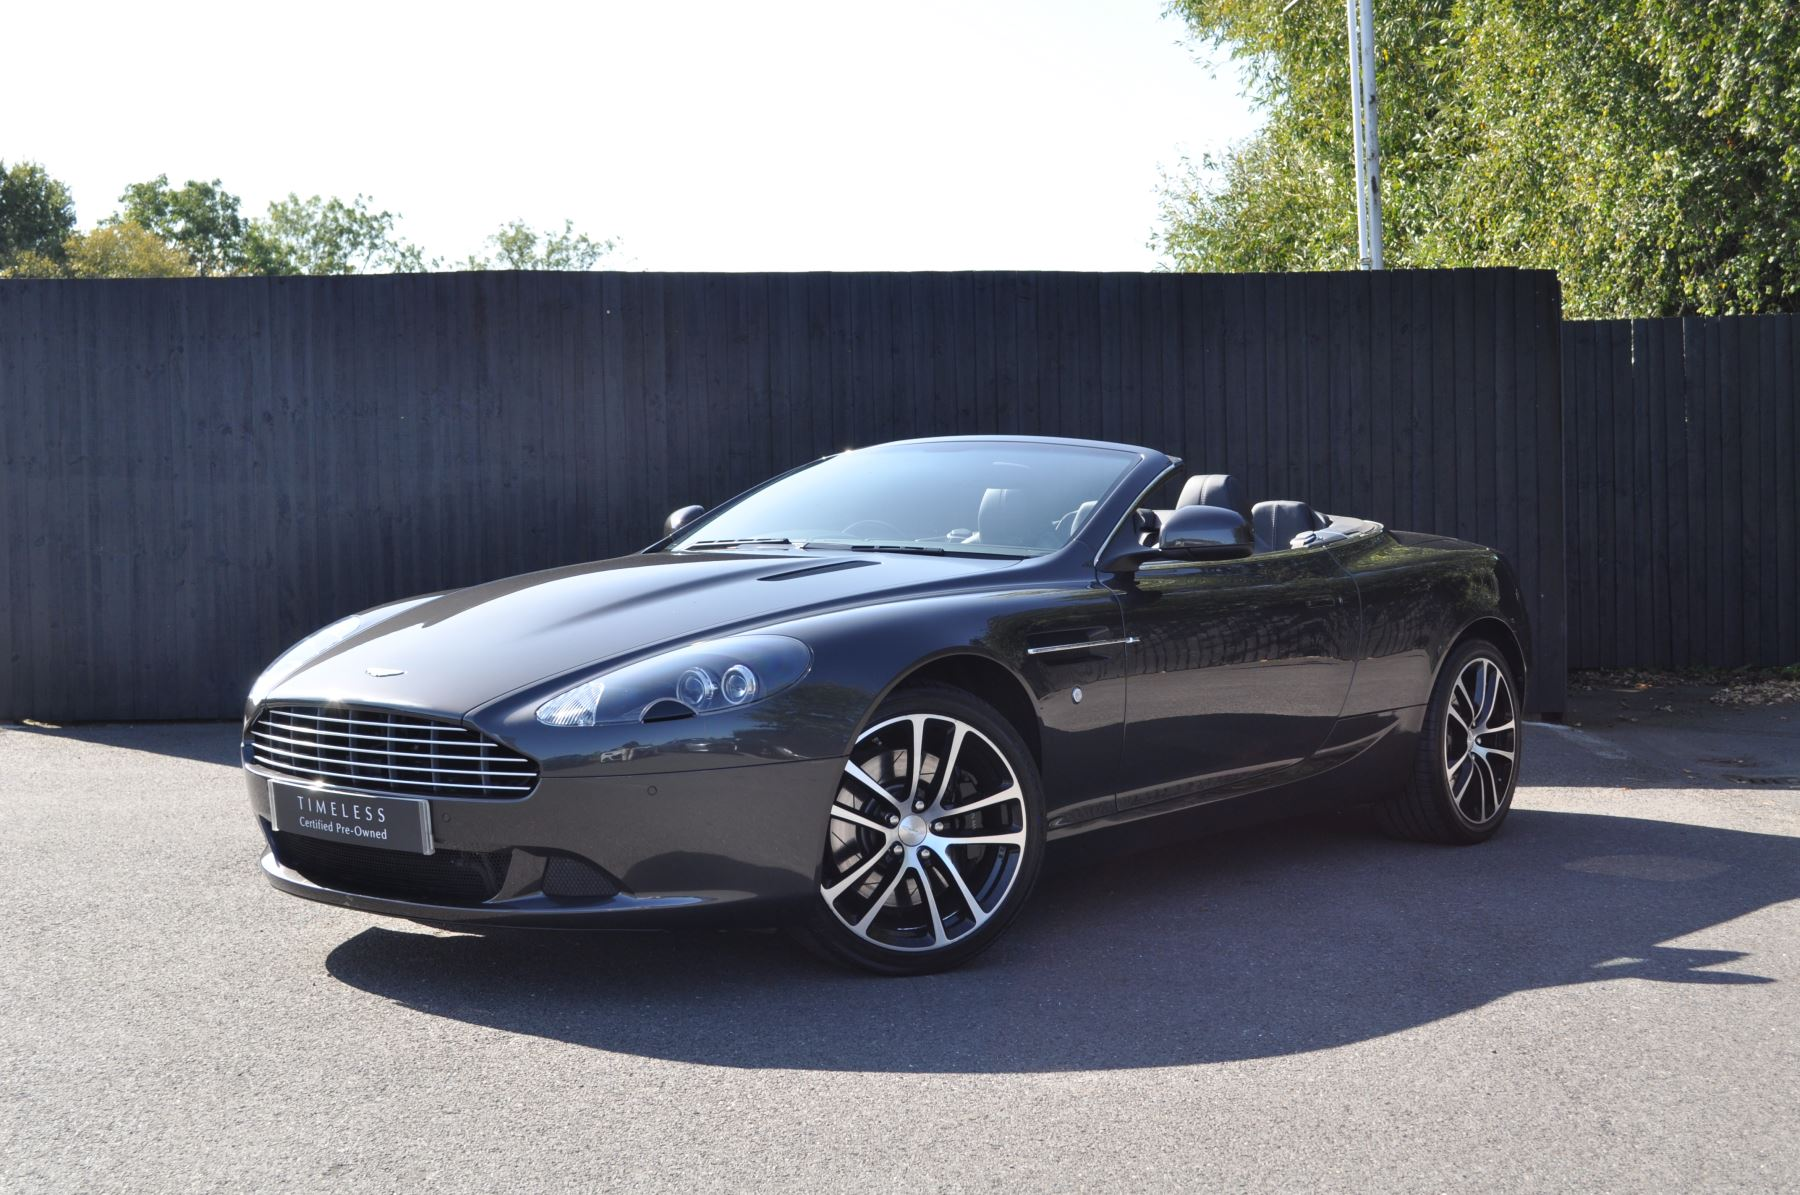 Aston Martin DB9 V12 2dr Volante Touchtronic [470] 5.9 Automatic Convertible (2012) image